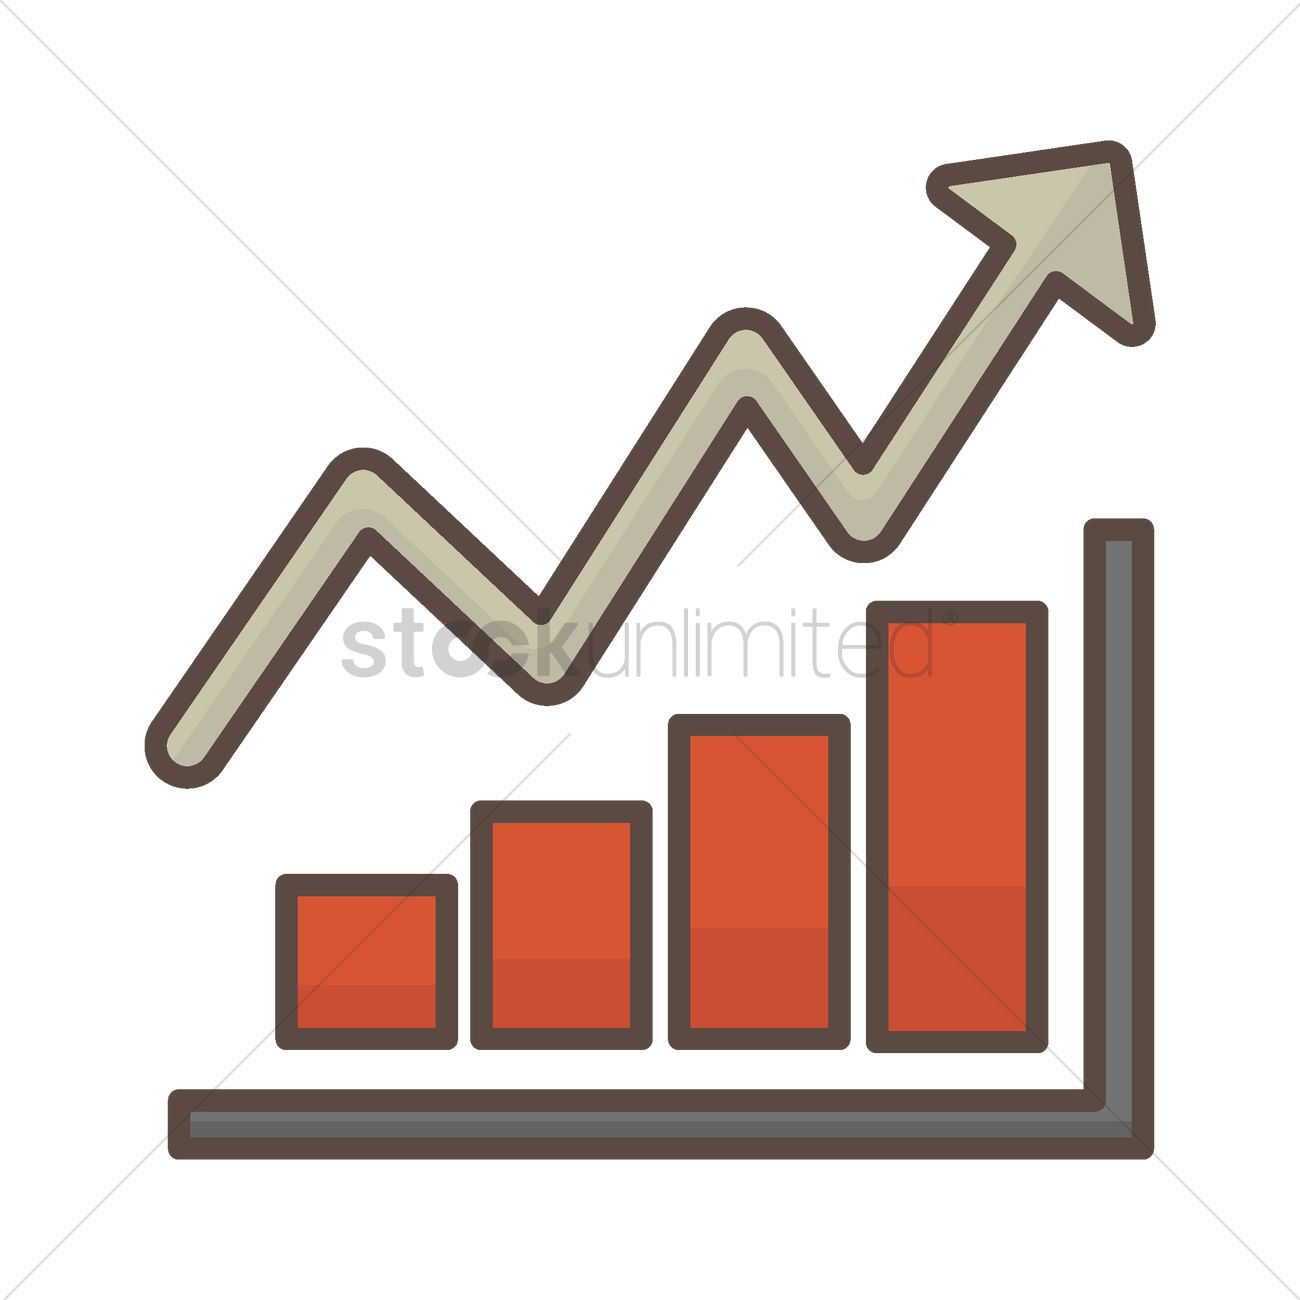 bar graph with arrow going up vector image - 1584487 | stockunlimited